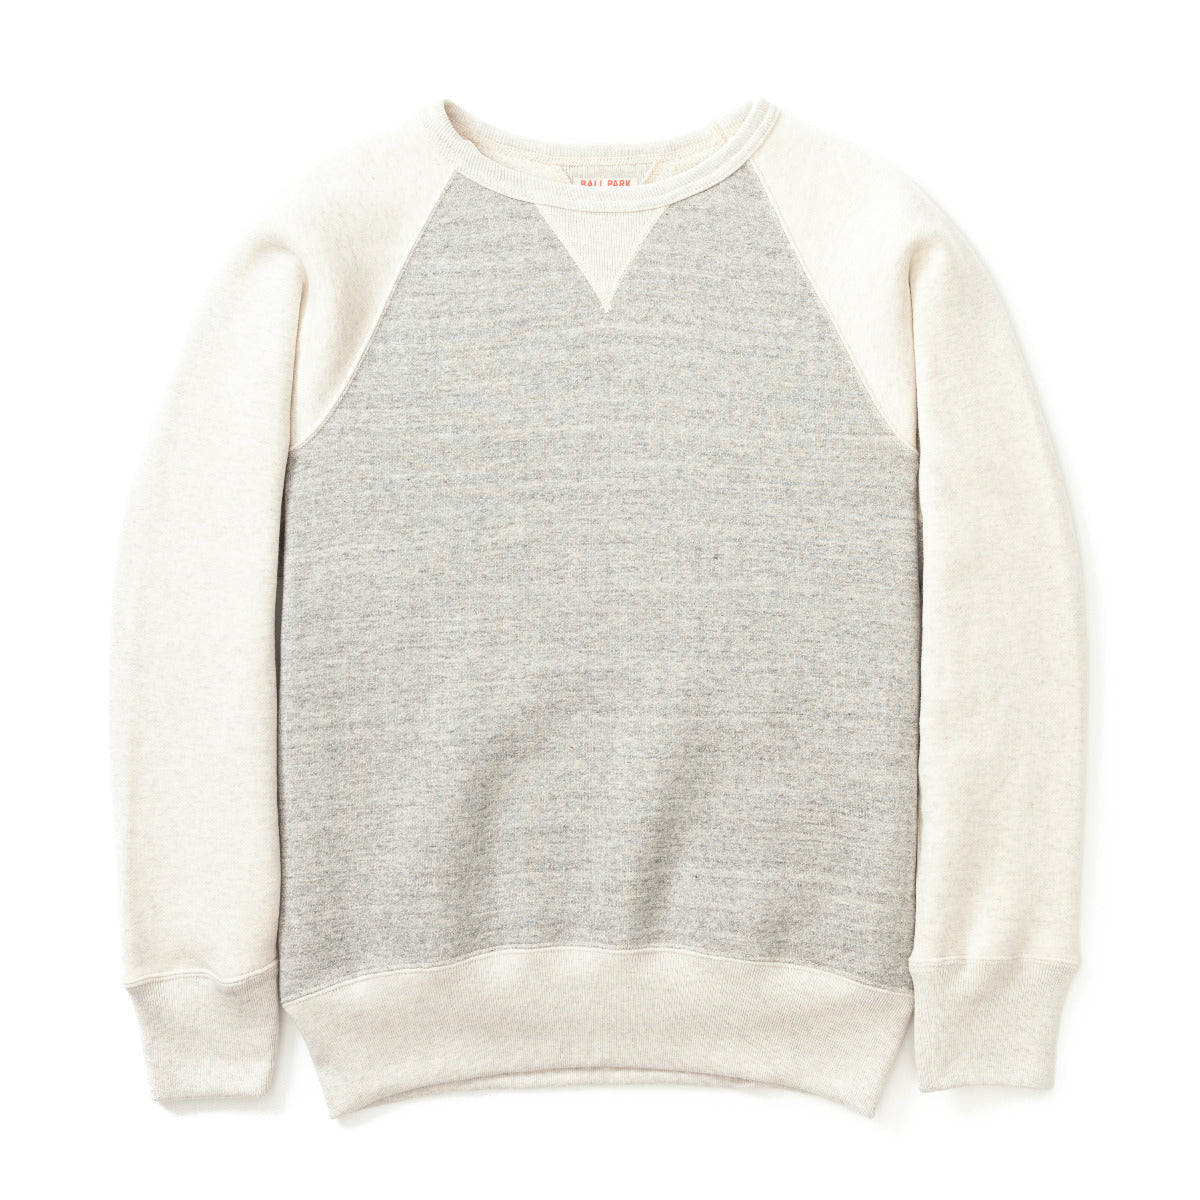 Two Tone Freedom Sleeve Sweatshirt